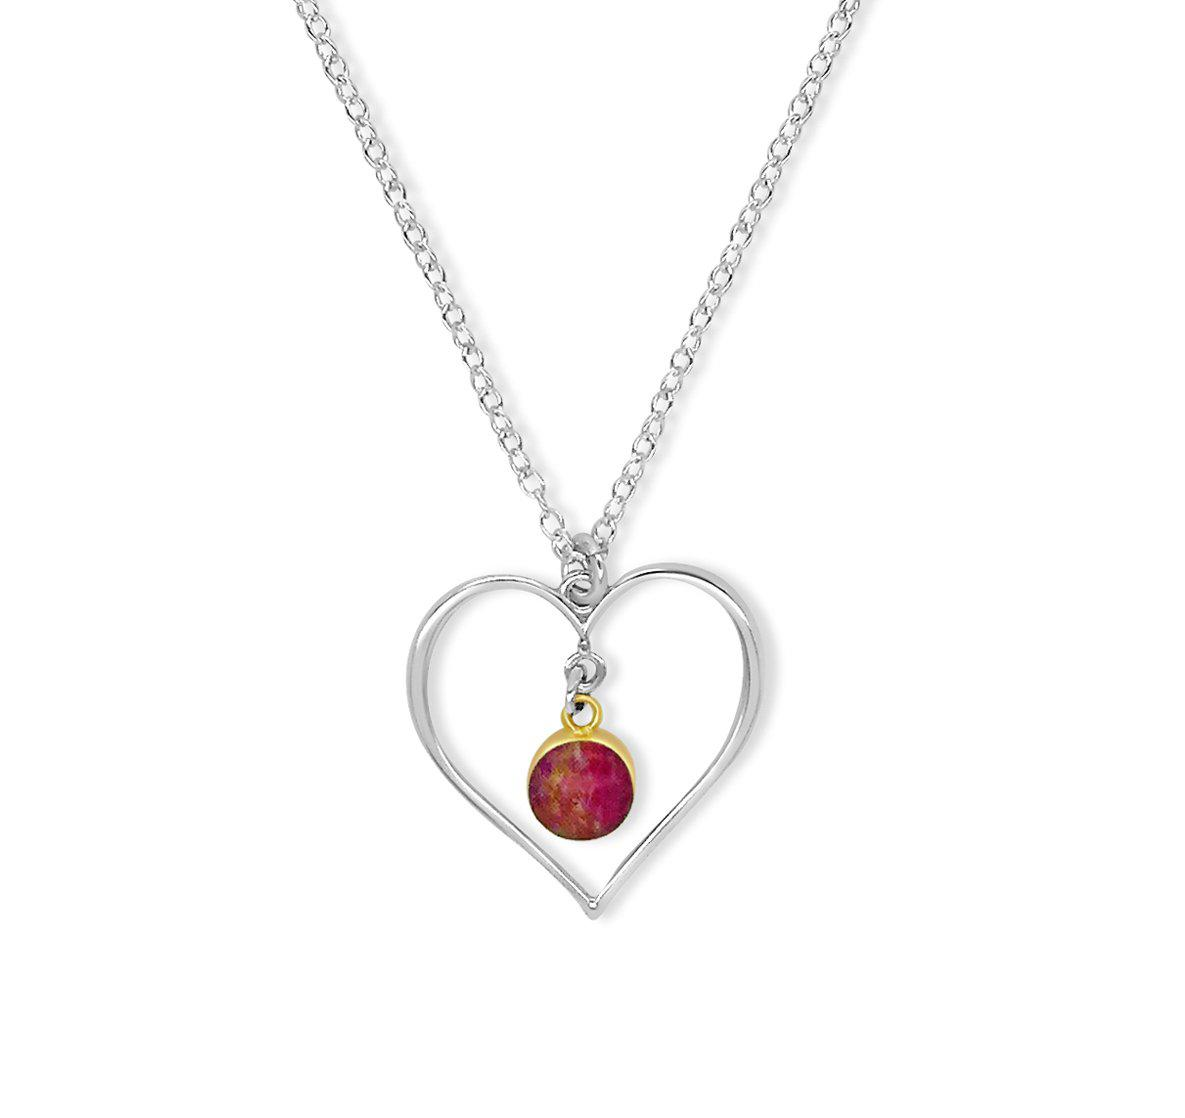 Heart Pocket Necklace for Heart Disease Research